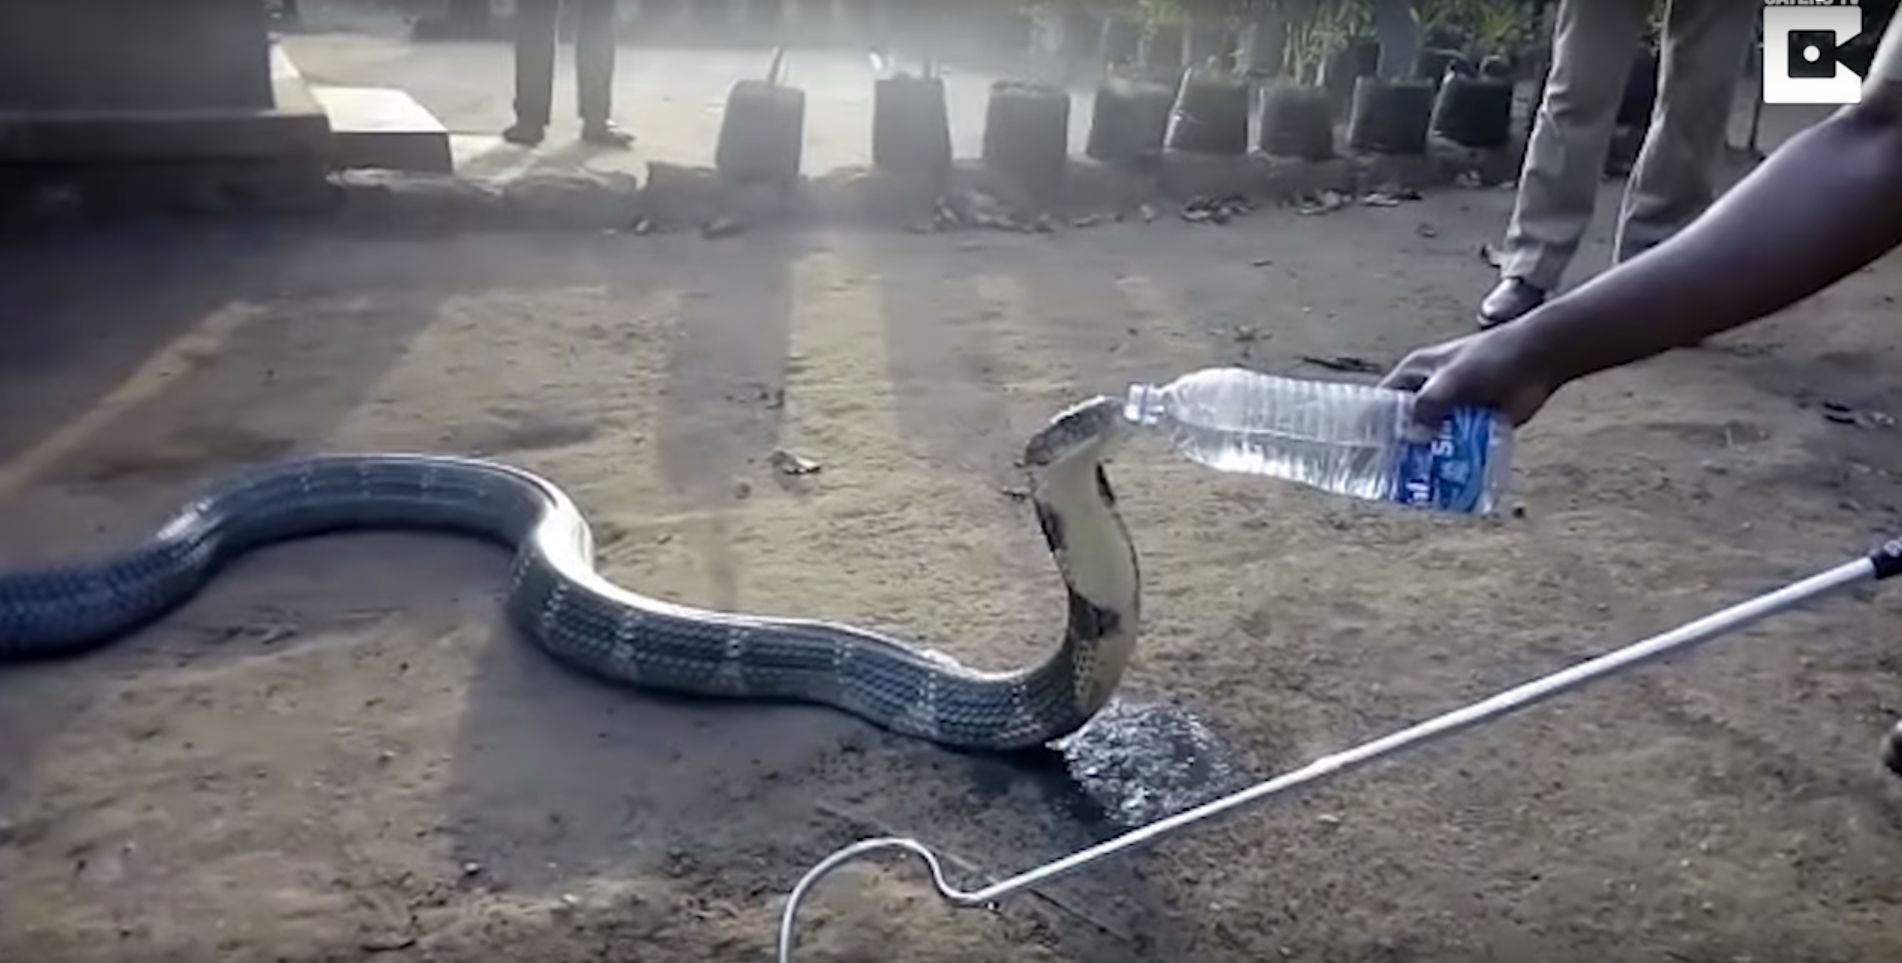 Video captured a king cobra appearing to drink from a water bottle amid extreme droughts in Southern India.